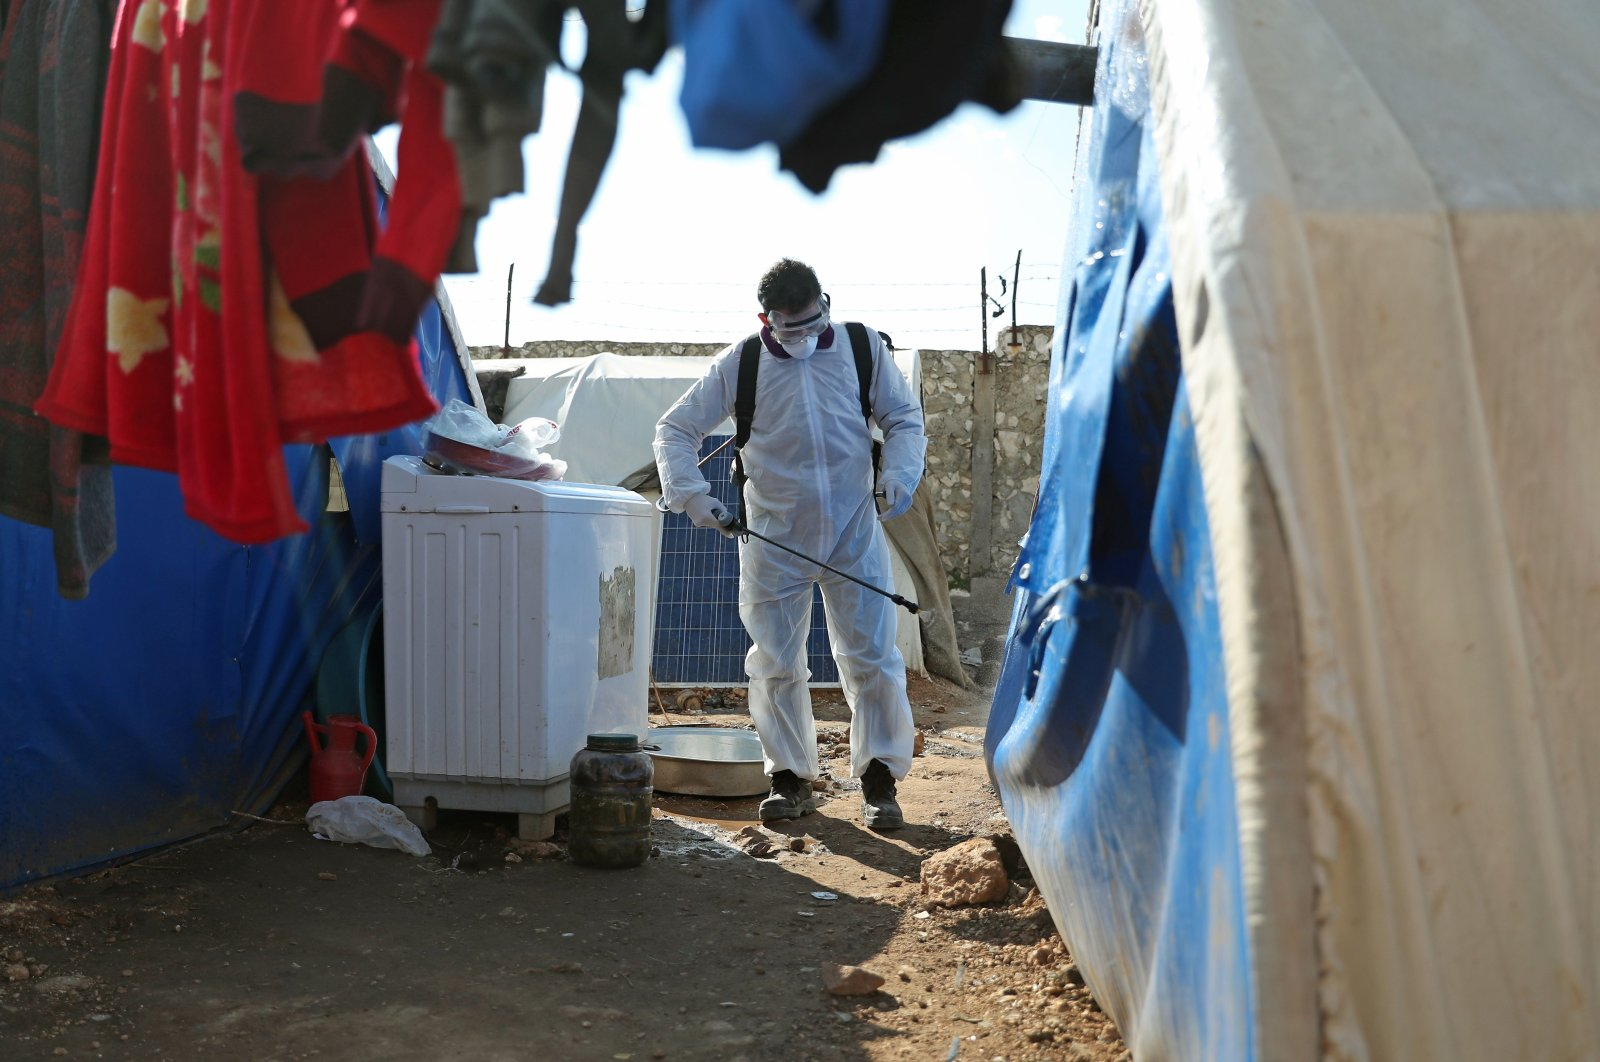 A member of the Syrian Violet NGO disinfects tents at a camp for displaced people in Kafr Jalis village, north of Idlib city, on March 21, 2020, as a preventive measure against the spread of the coronavirus. (AFP Photo)